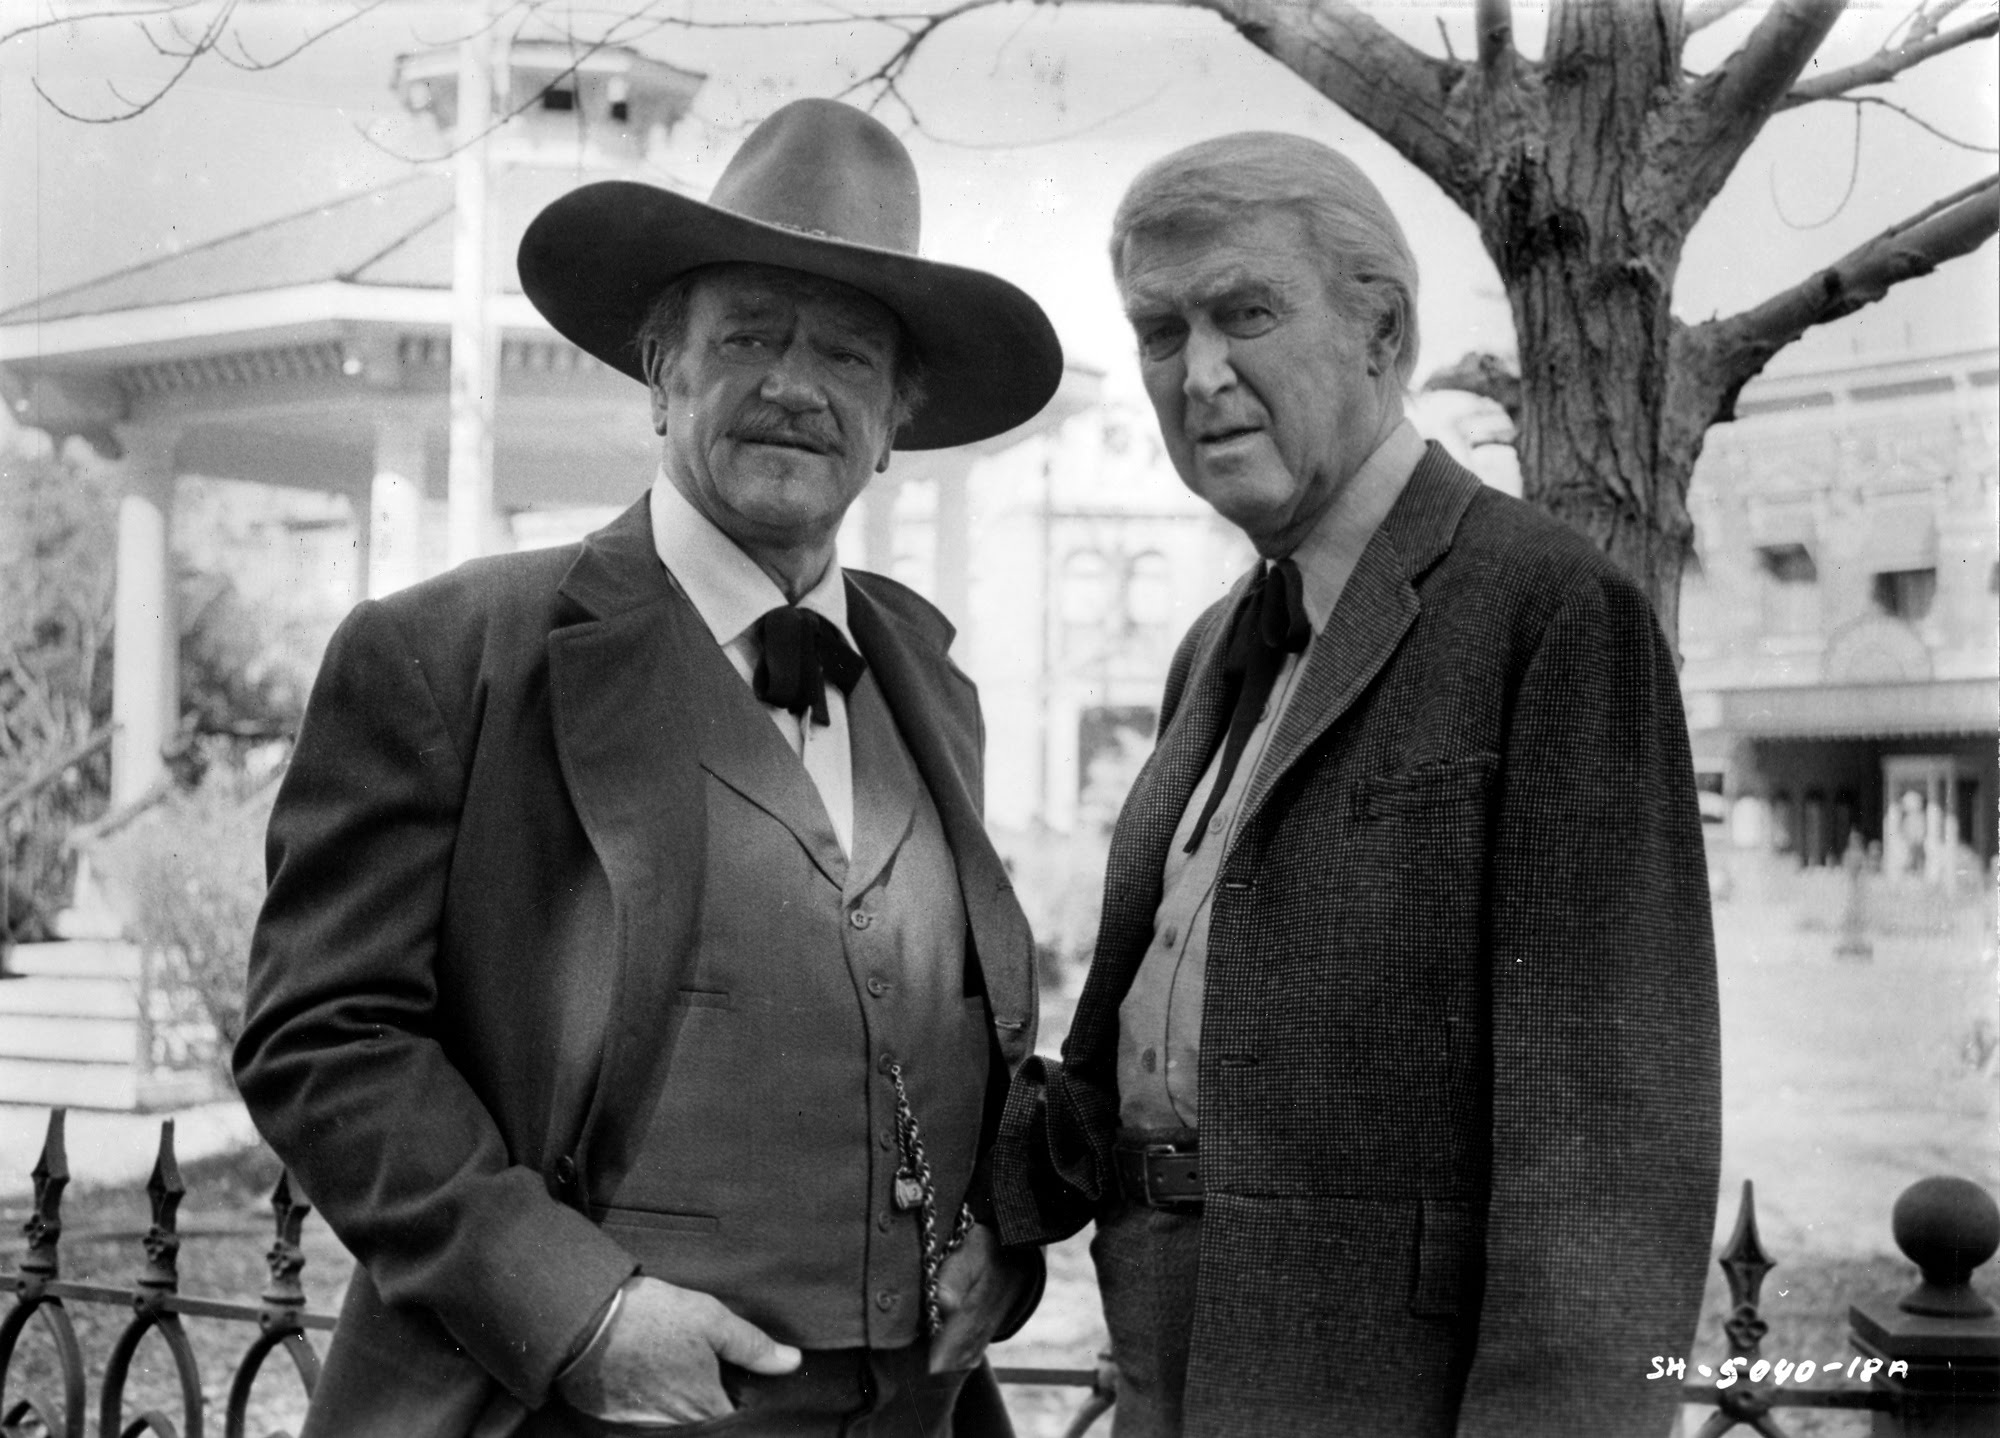 Behind-the-scenes of John Wayne's last film 'The Shootist' (1976)